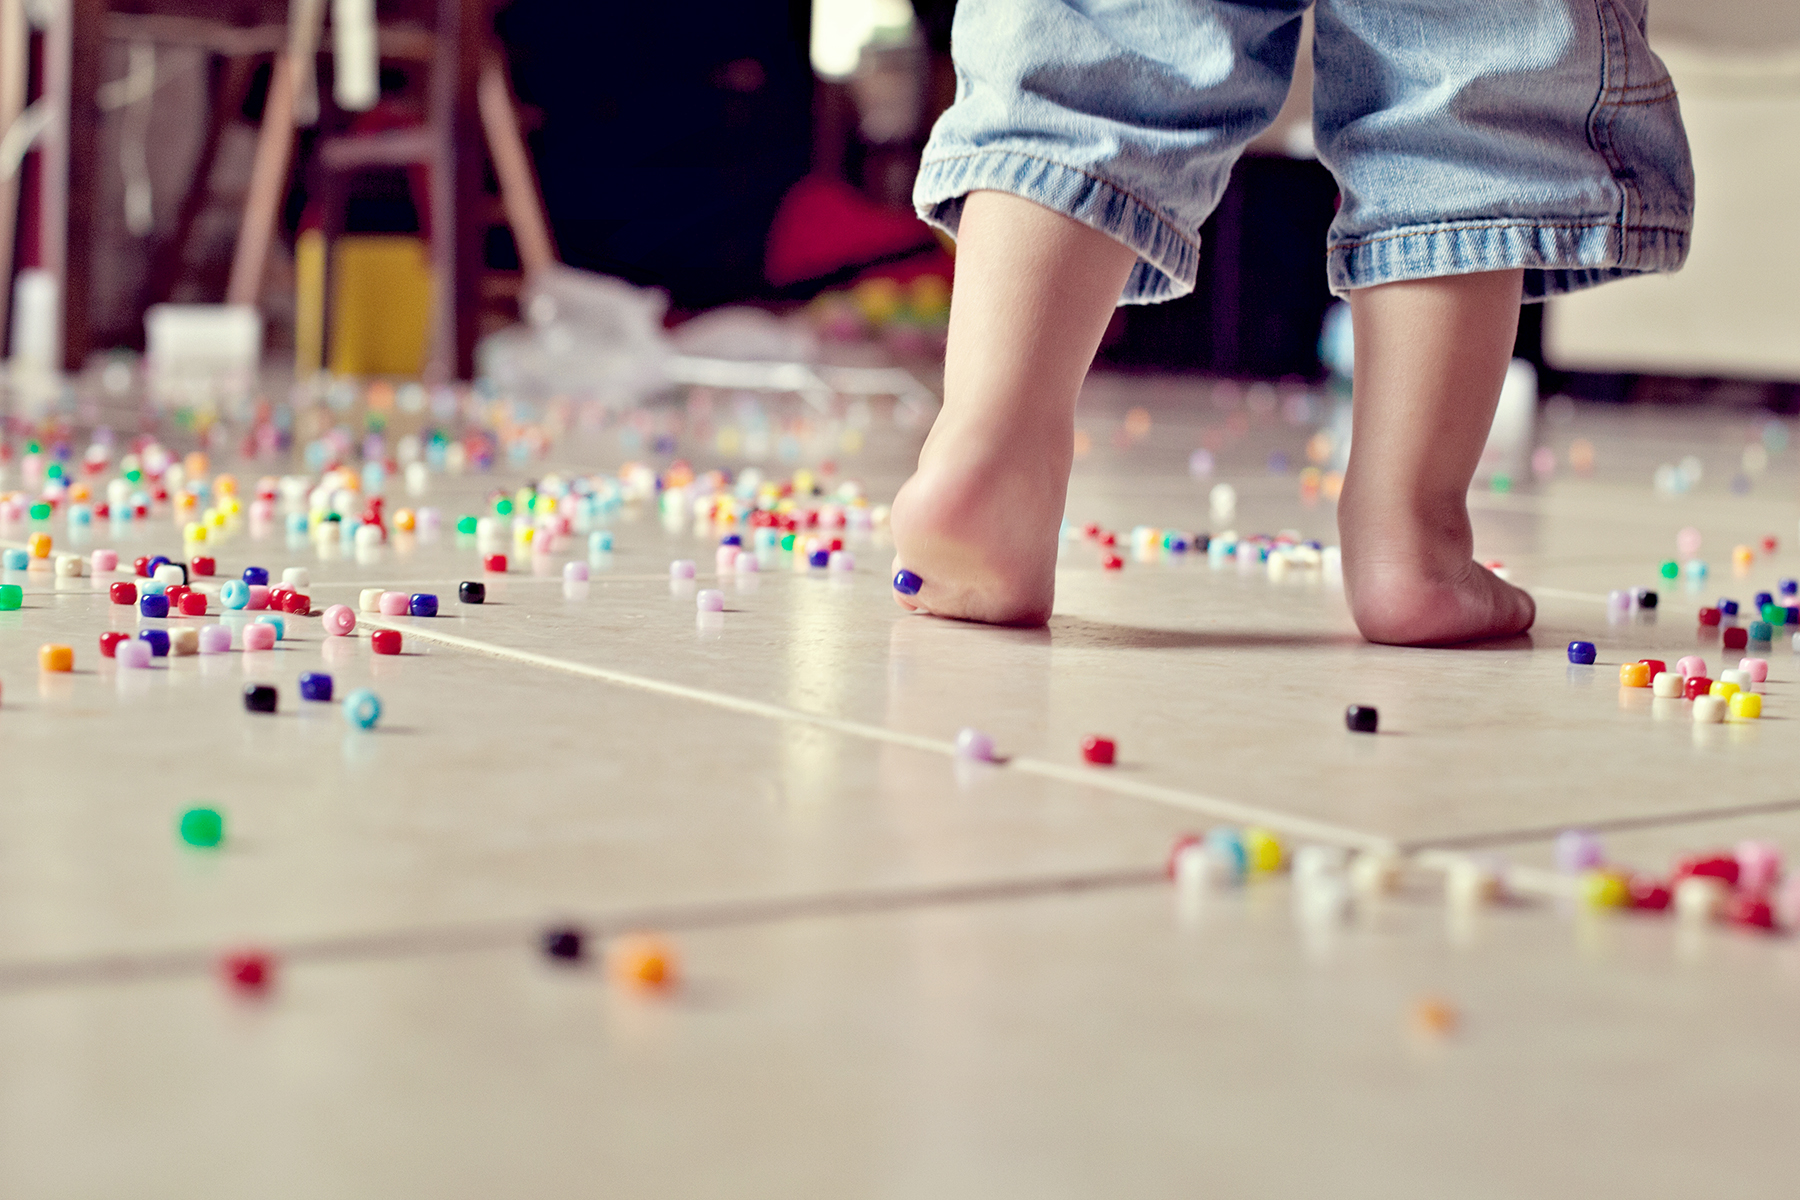 Toddler and spilled beads